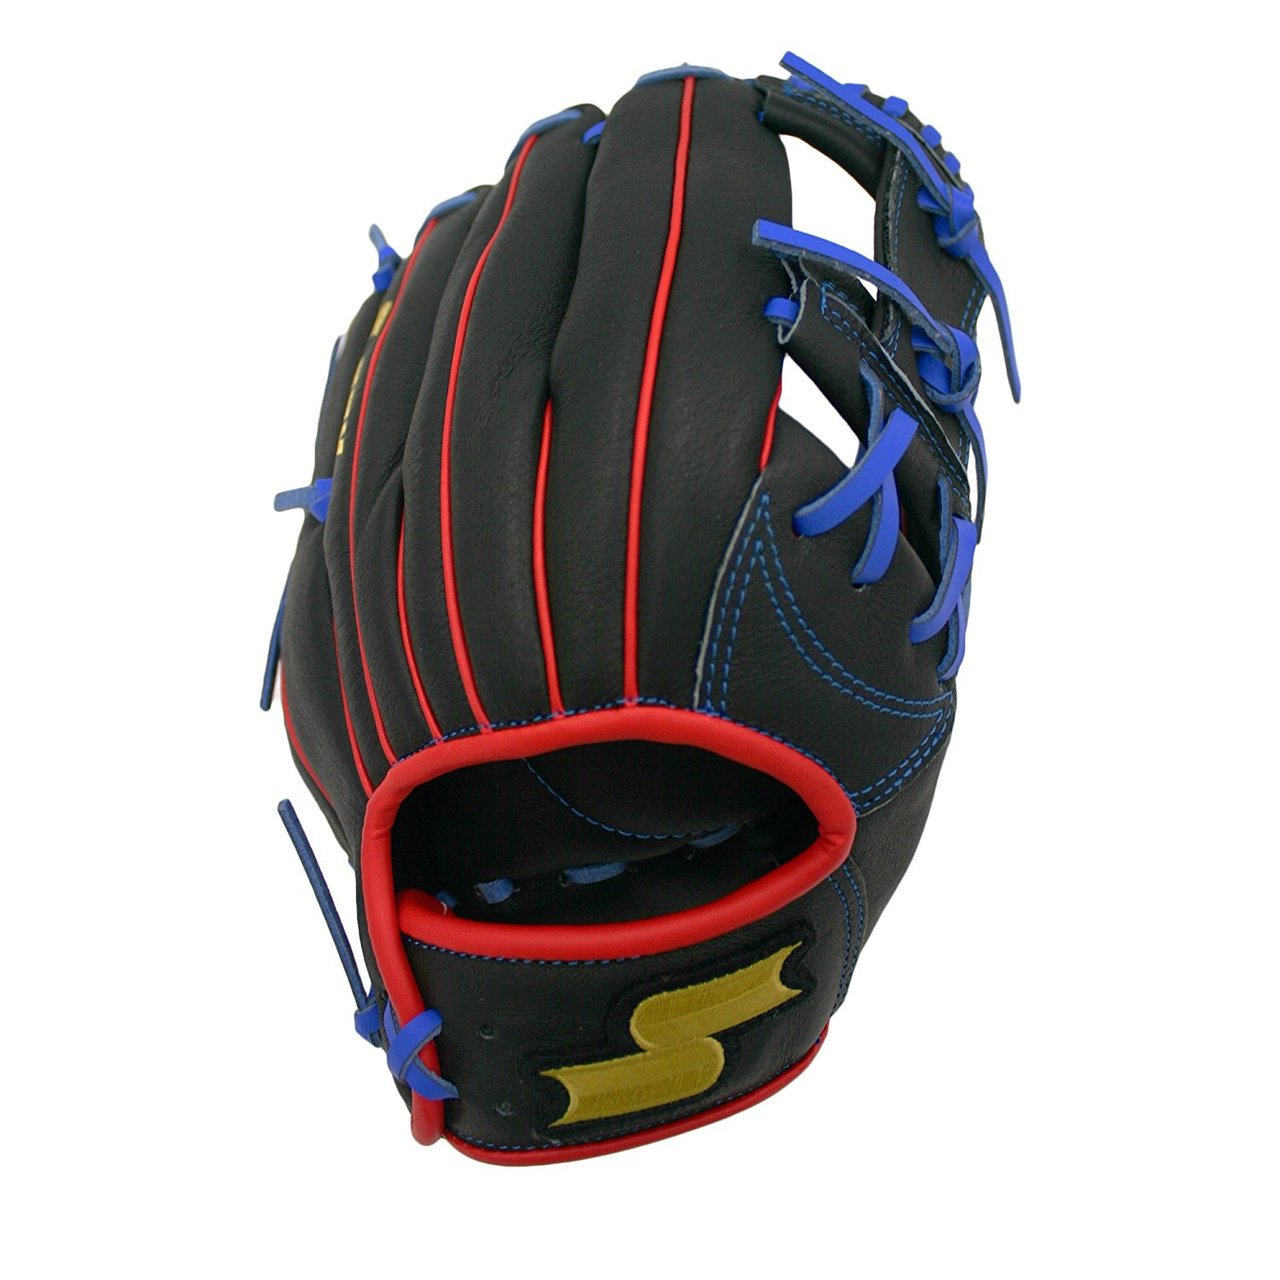 ssk-javy-baez-youth-baseball-glove-11-5-jb9-series-right-hand-throw S18JBOD-RightHandThrow SSK 083351452001 Inspired by the game day glove of Javier Baez Features ssk